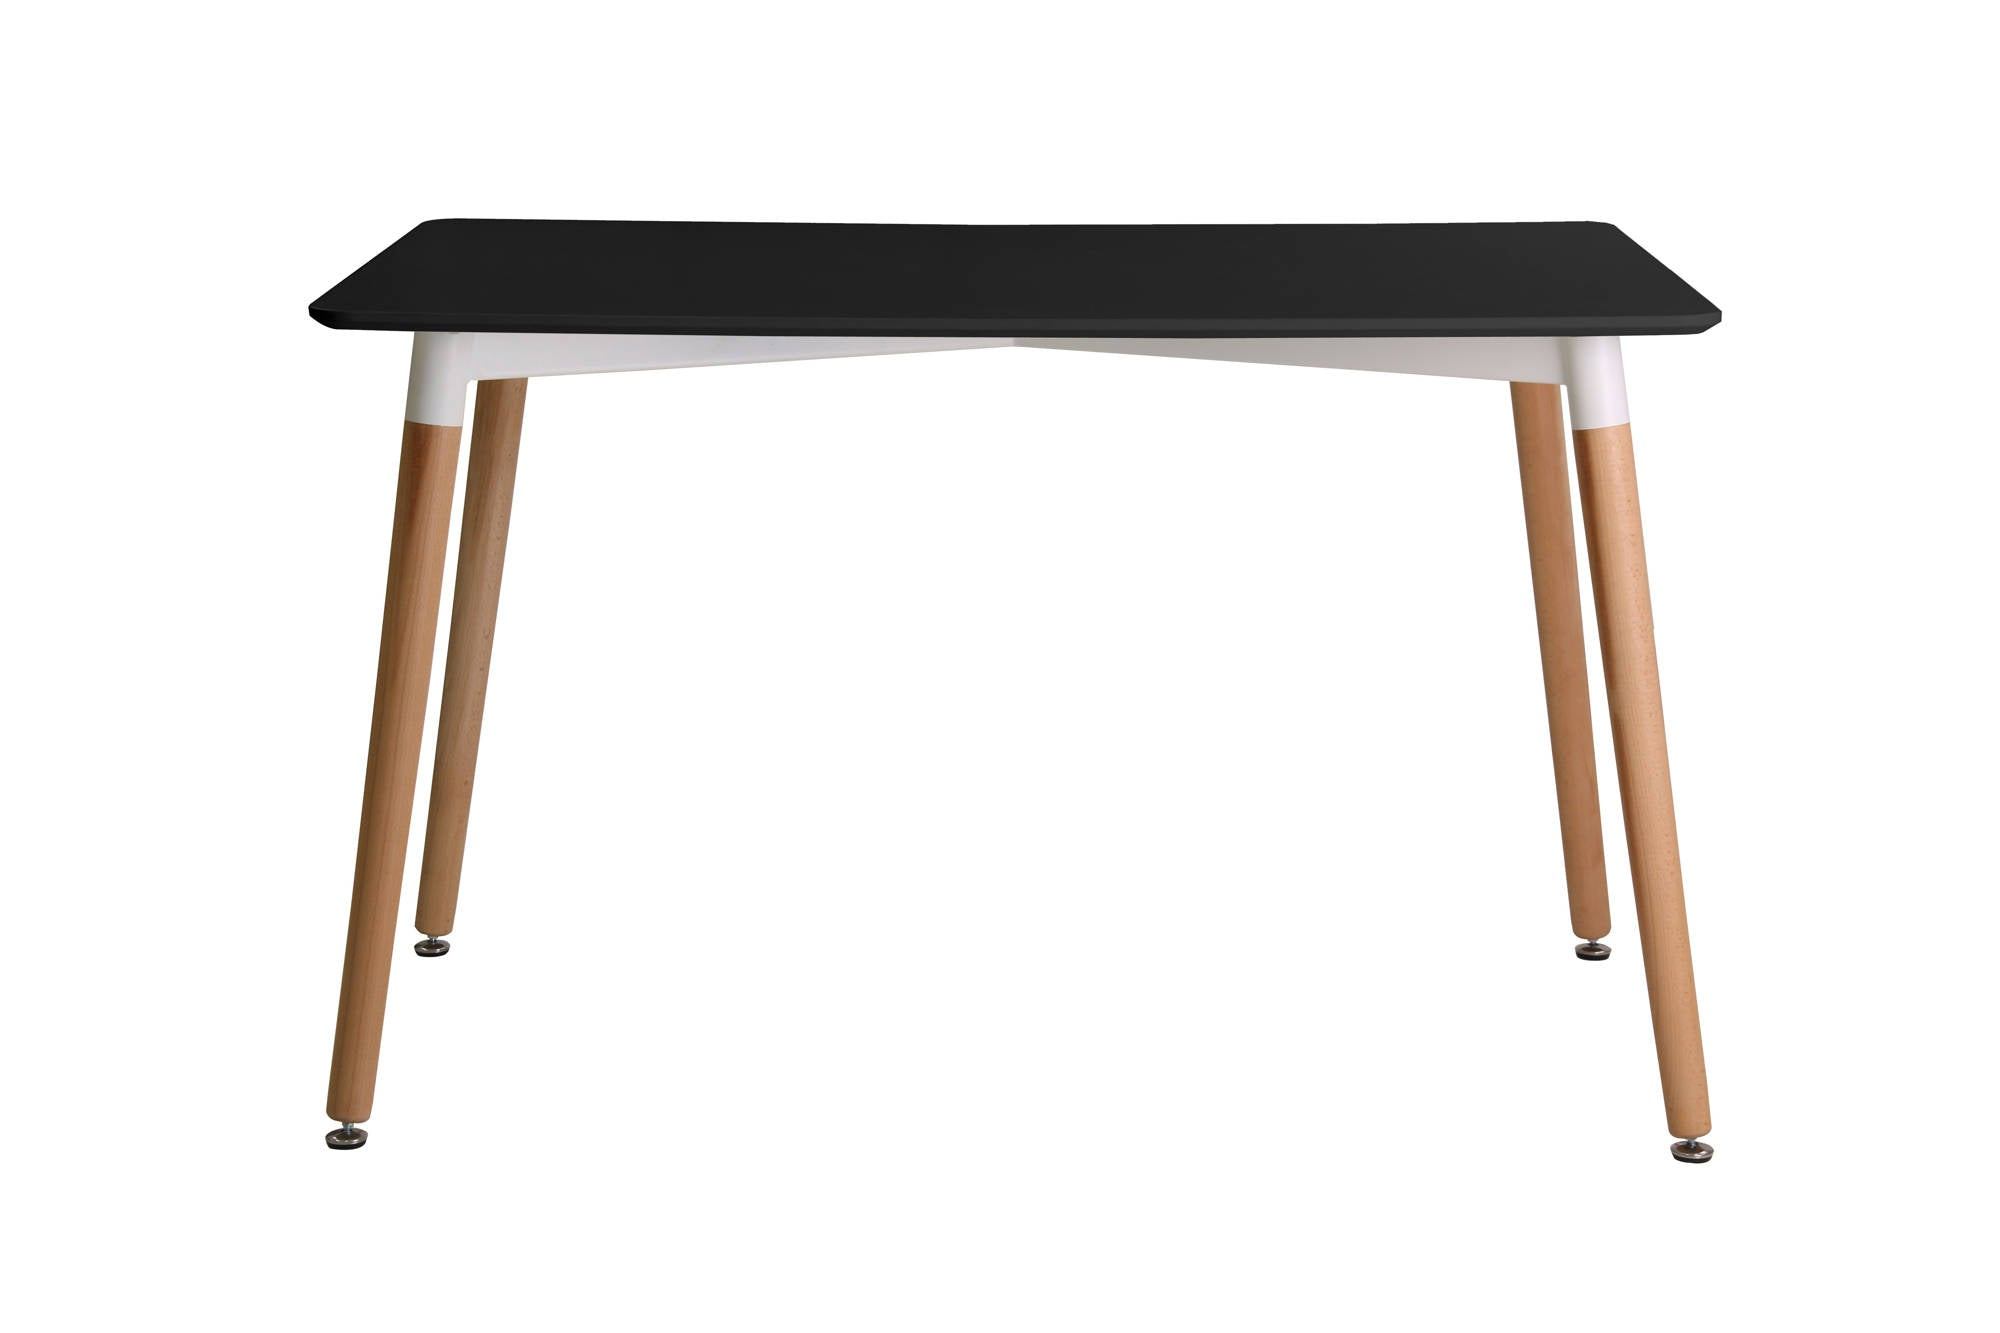 Herning Dining Table in Black - Ezzo